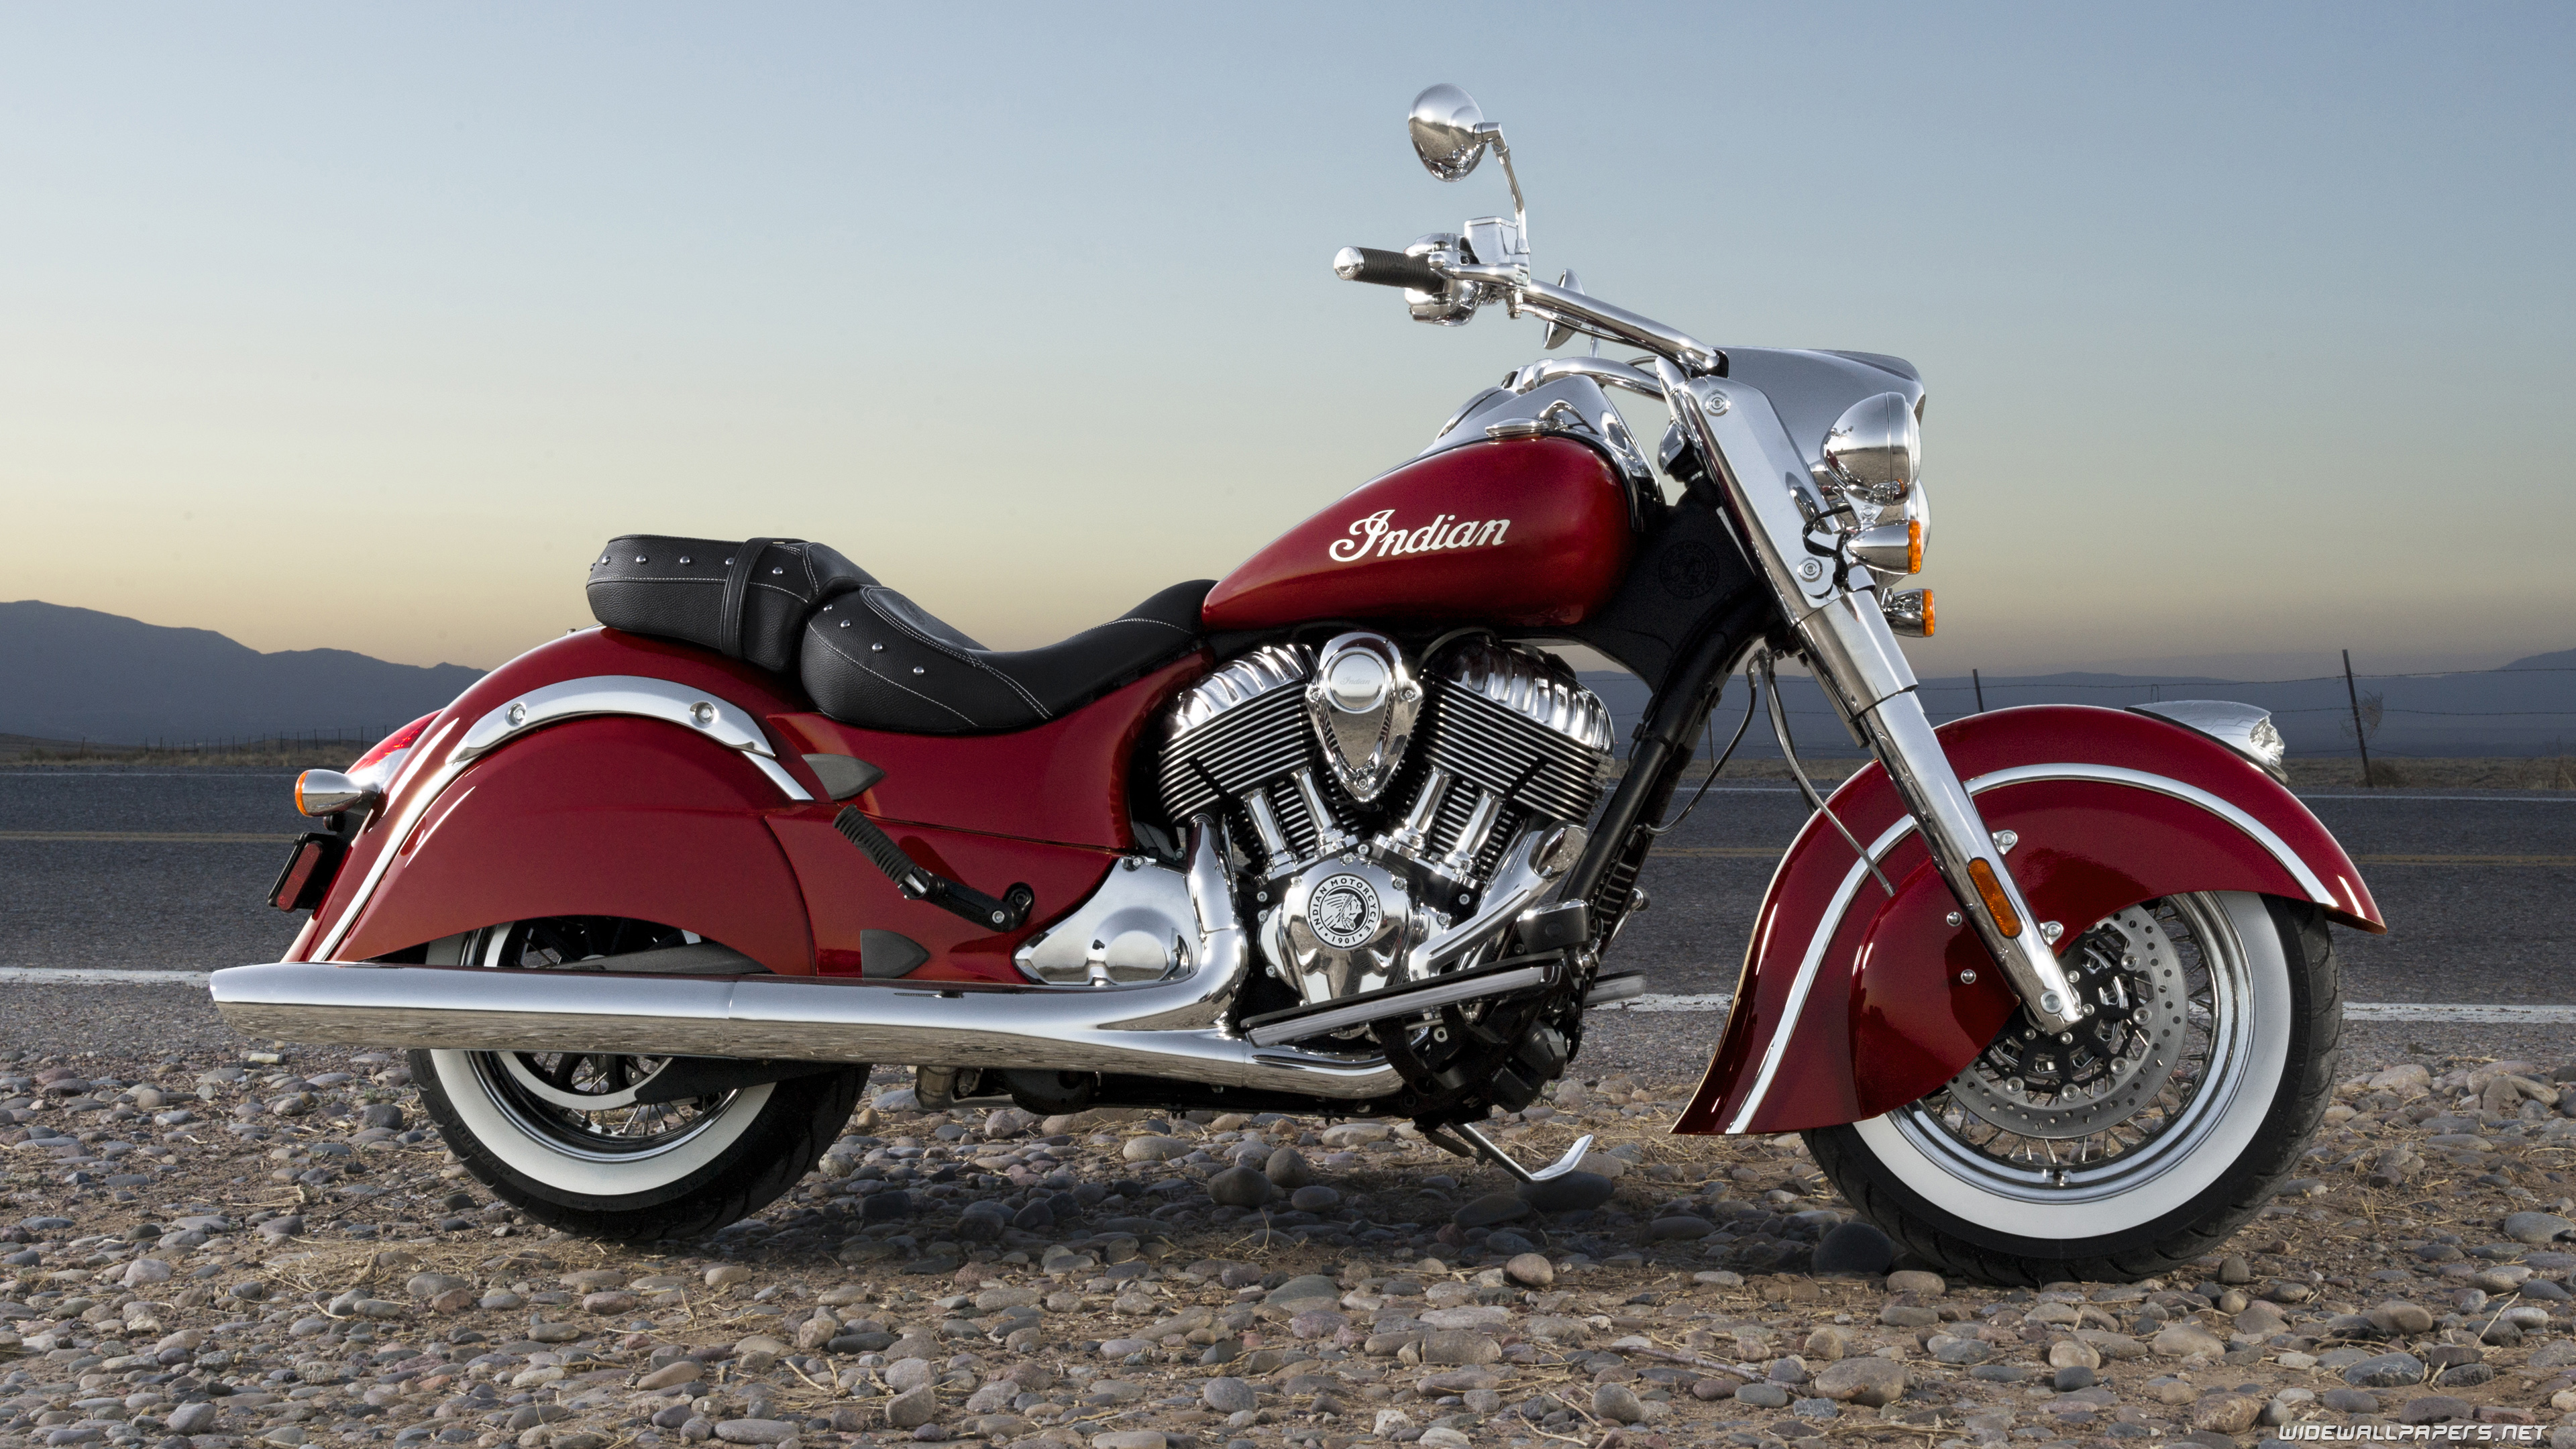 Indian Chief Classic motorcycle desktop wallpapers 4K Ultra HD 3840x2160